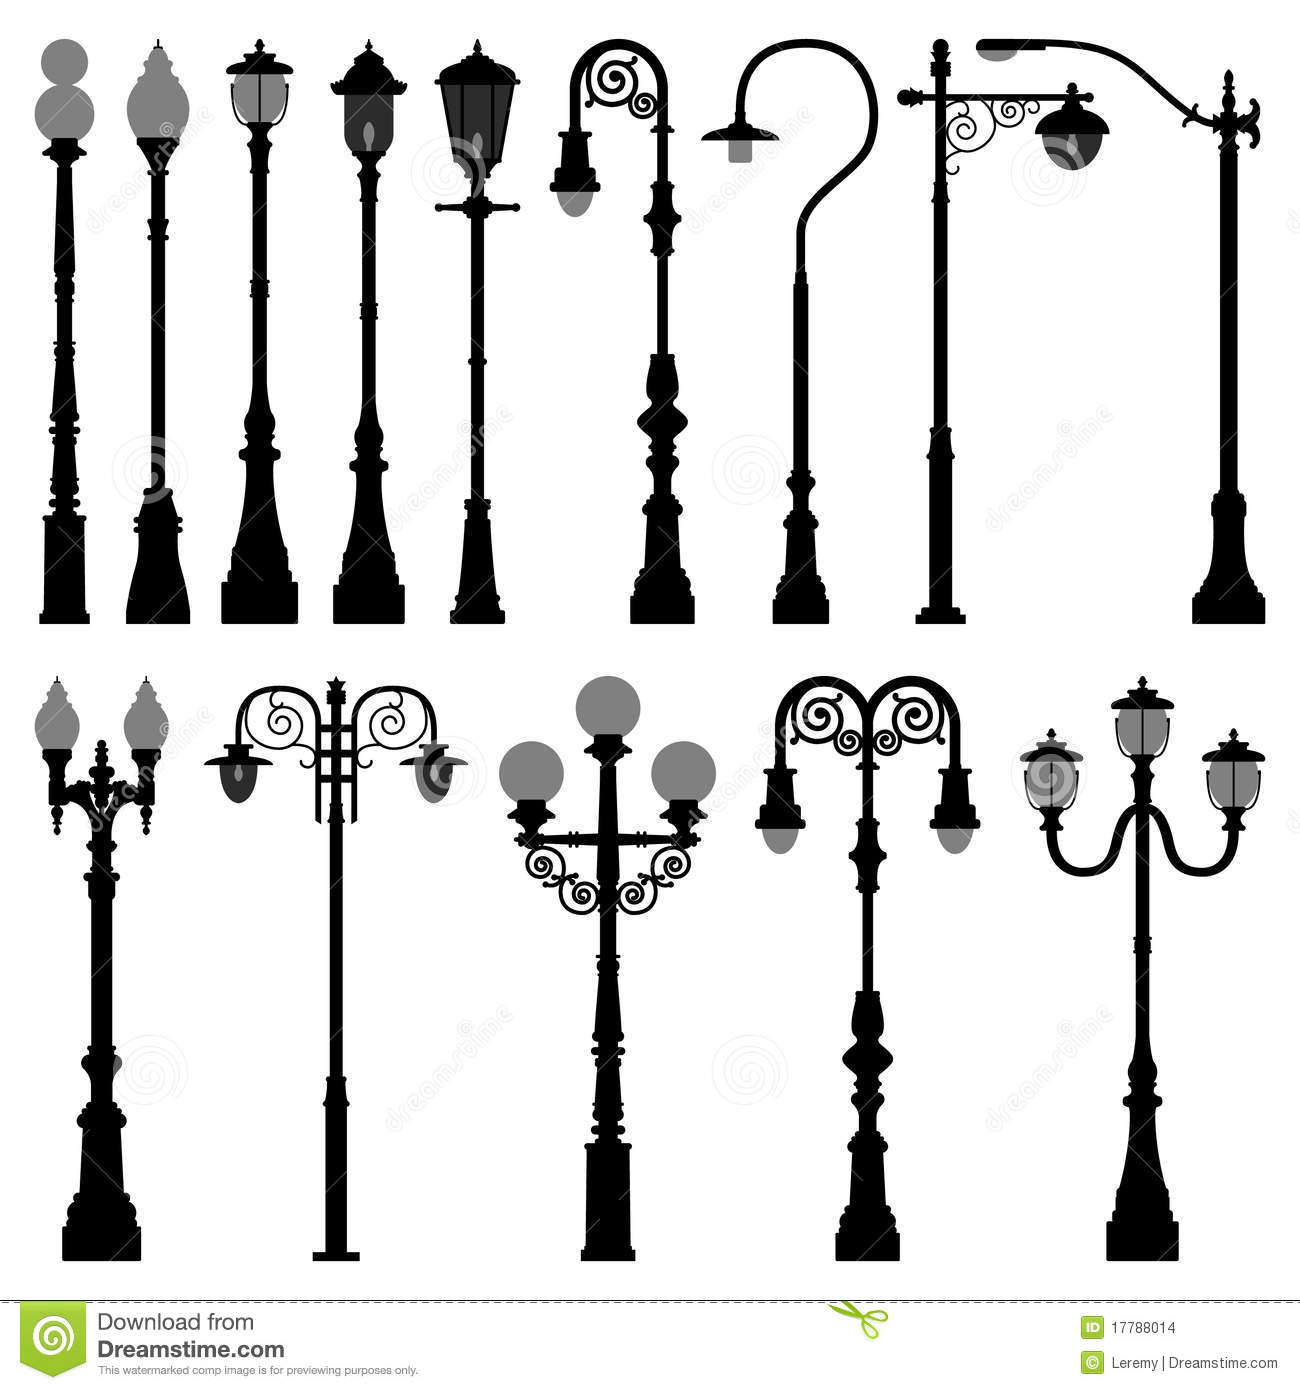 Lamp Post Lamppost Street Road Light Pole Stock Images - Image ...